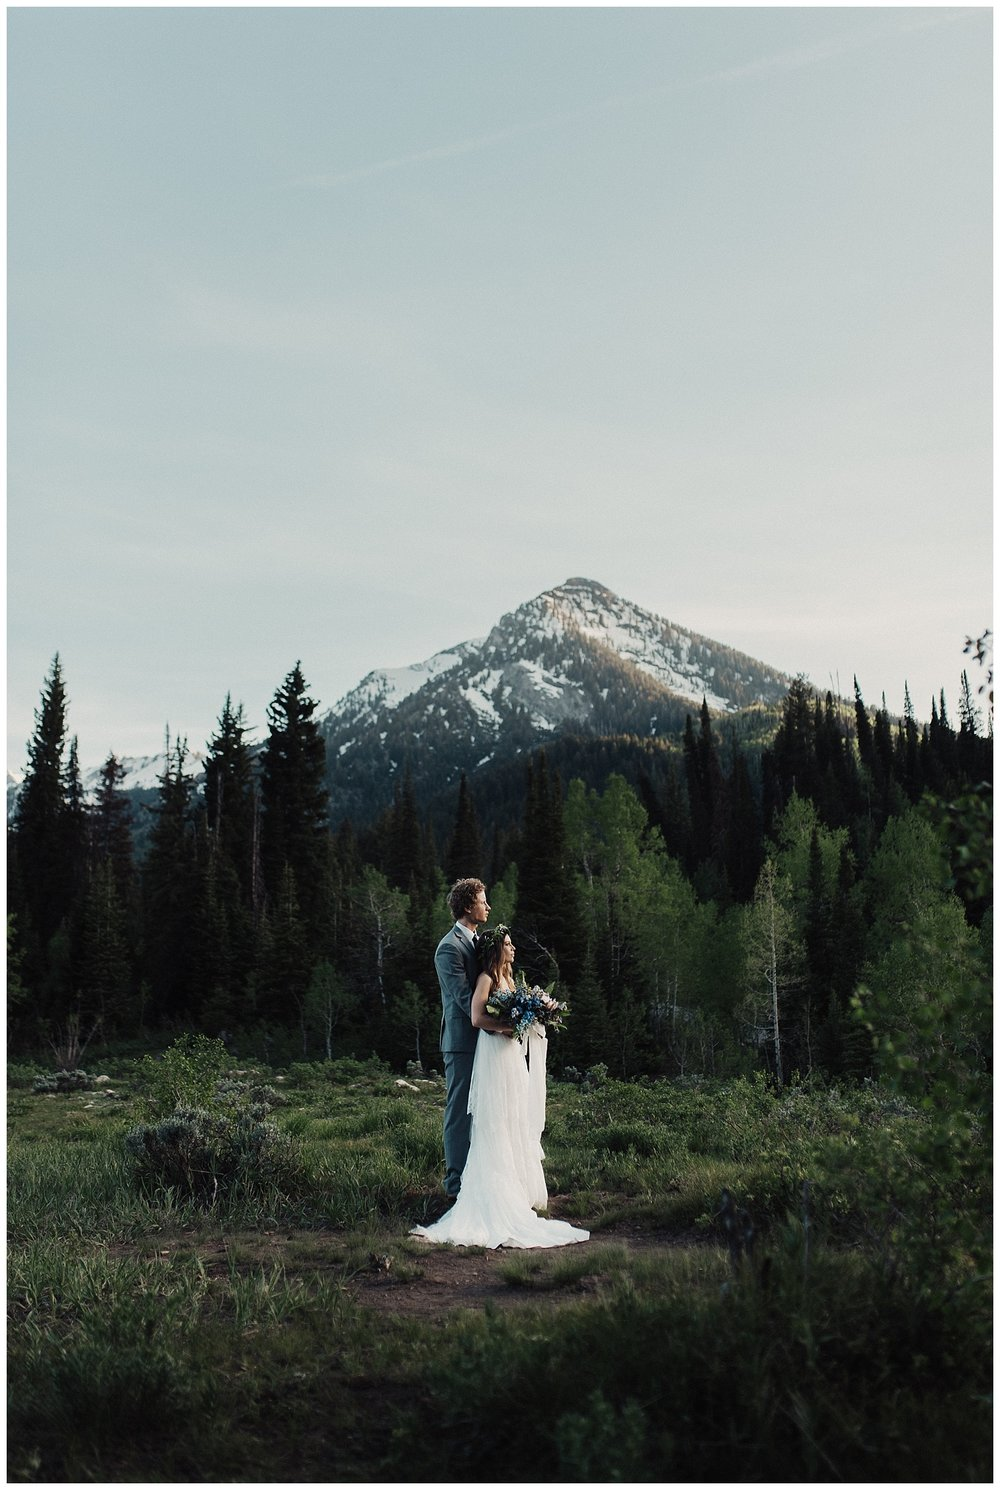 Jordan Pines Bridals in Big Cottonwood Canyon